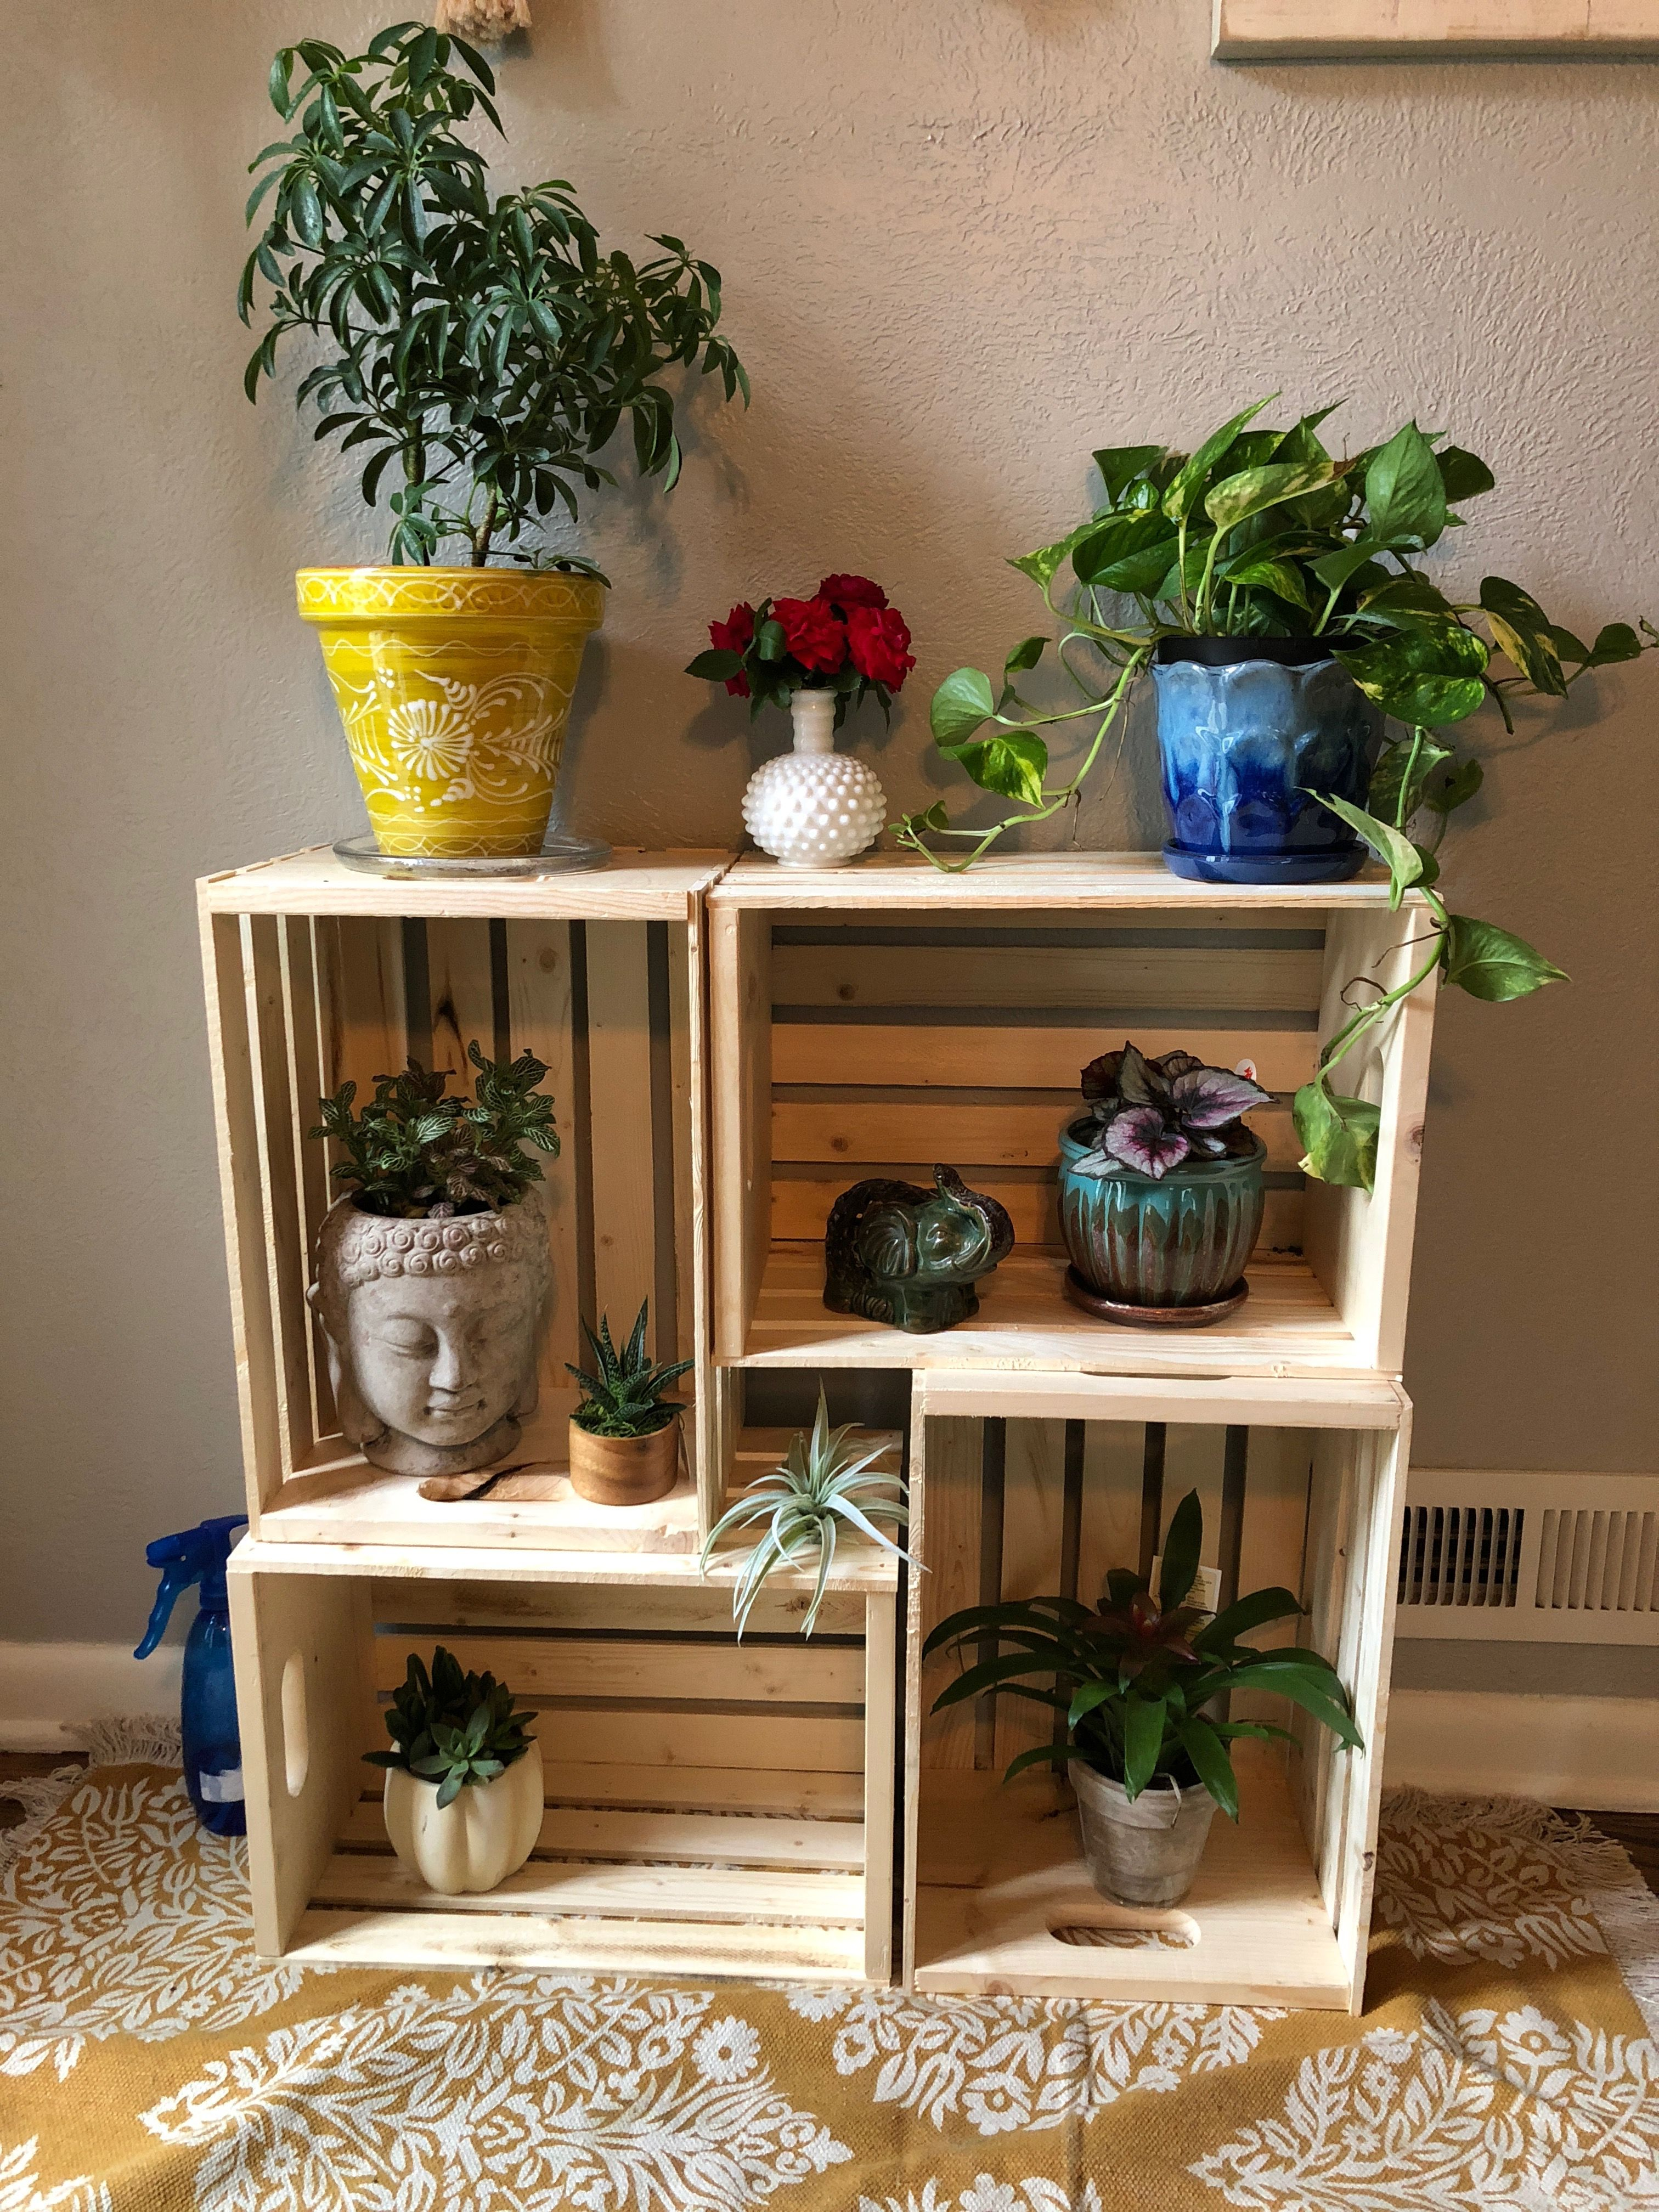 Diy Plant Stand Wooden Crate Plant Decor Indoor Diy Plant Stand Plant Stand Indoor